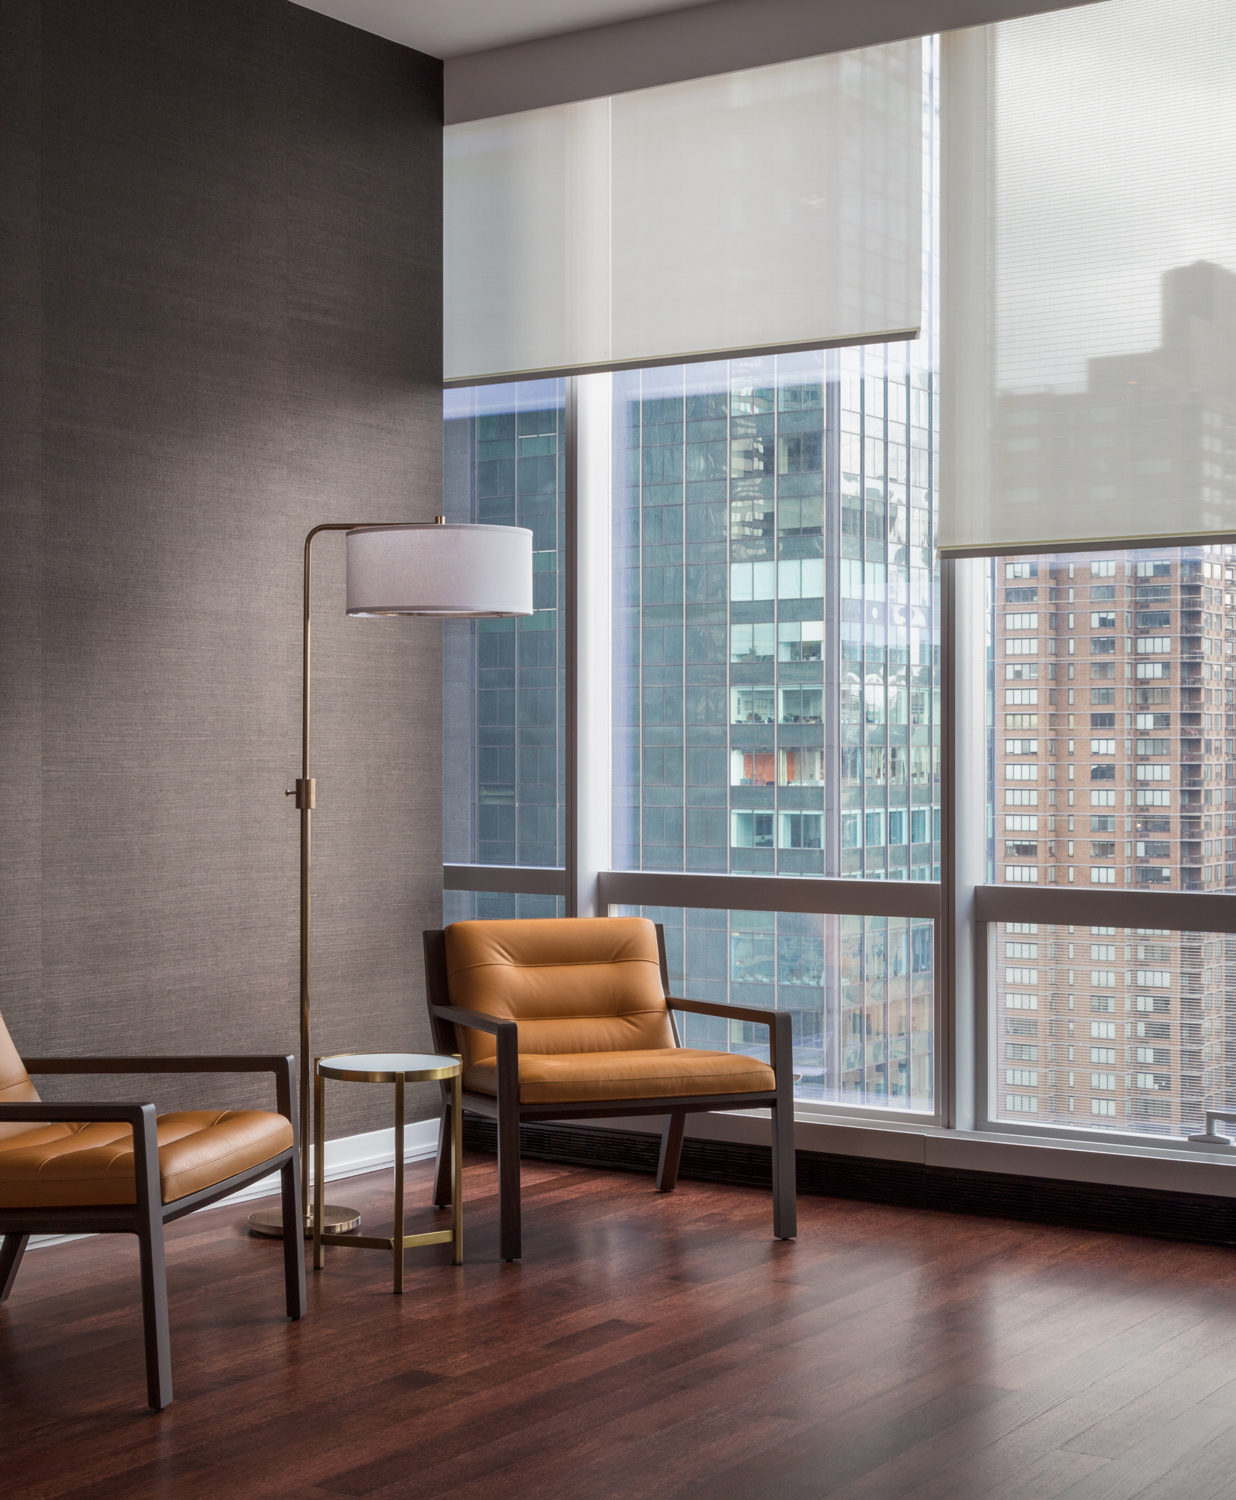 Convenience and Service all in one place - Our window treatment services are full spectrum, starting from conception to installation. Your manual or motorized systems can be fulfilled.Learn more ➝